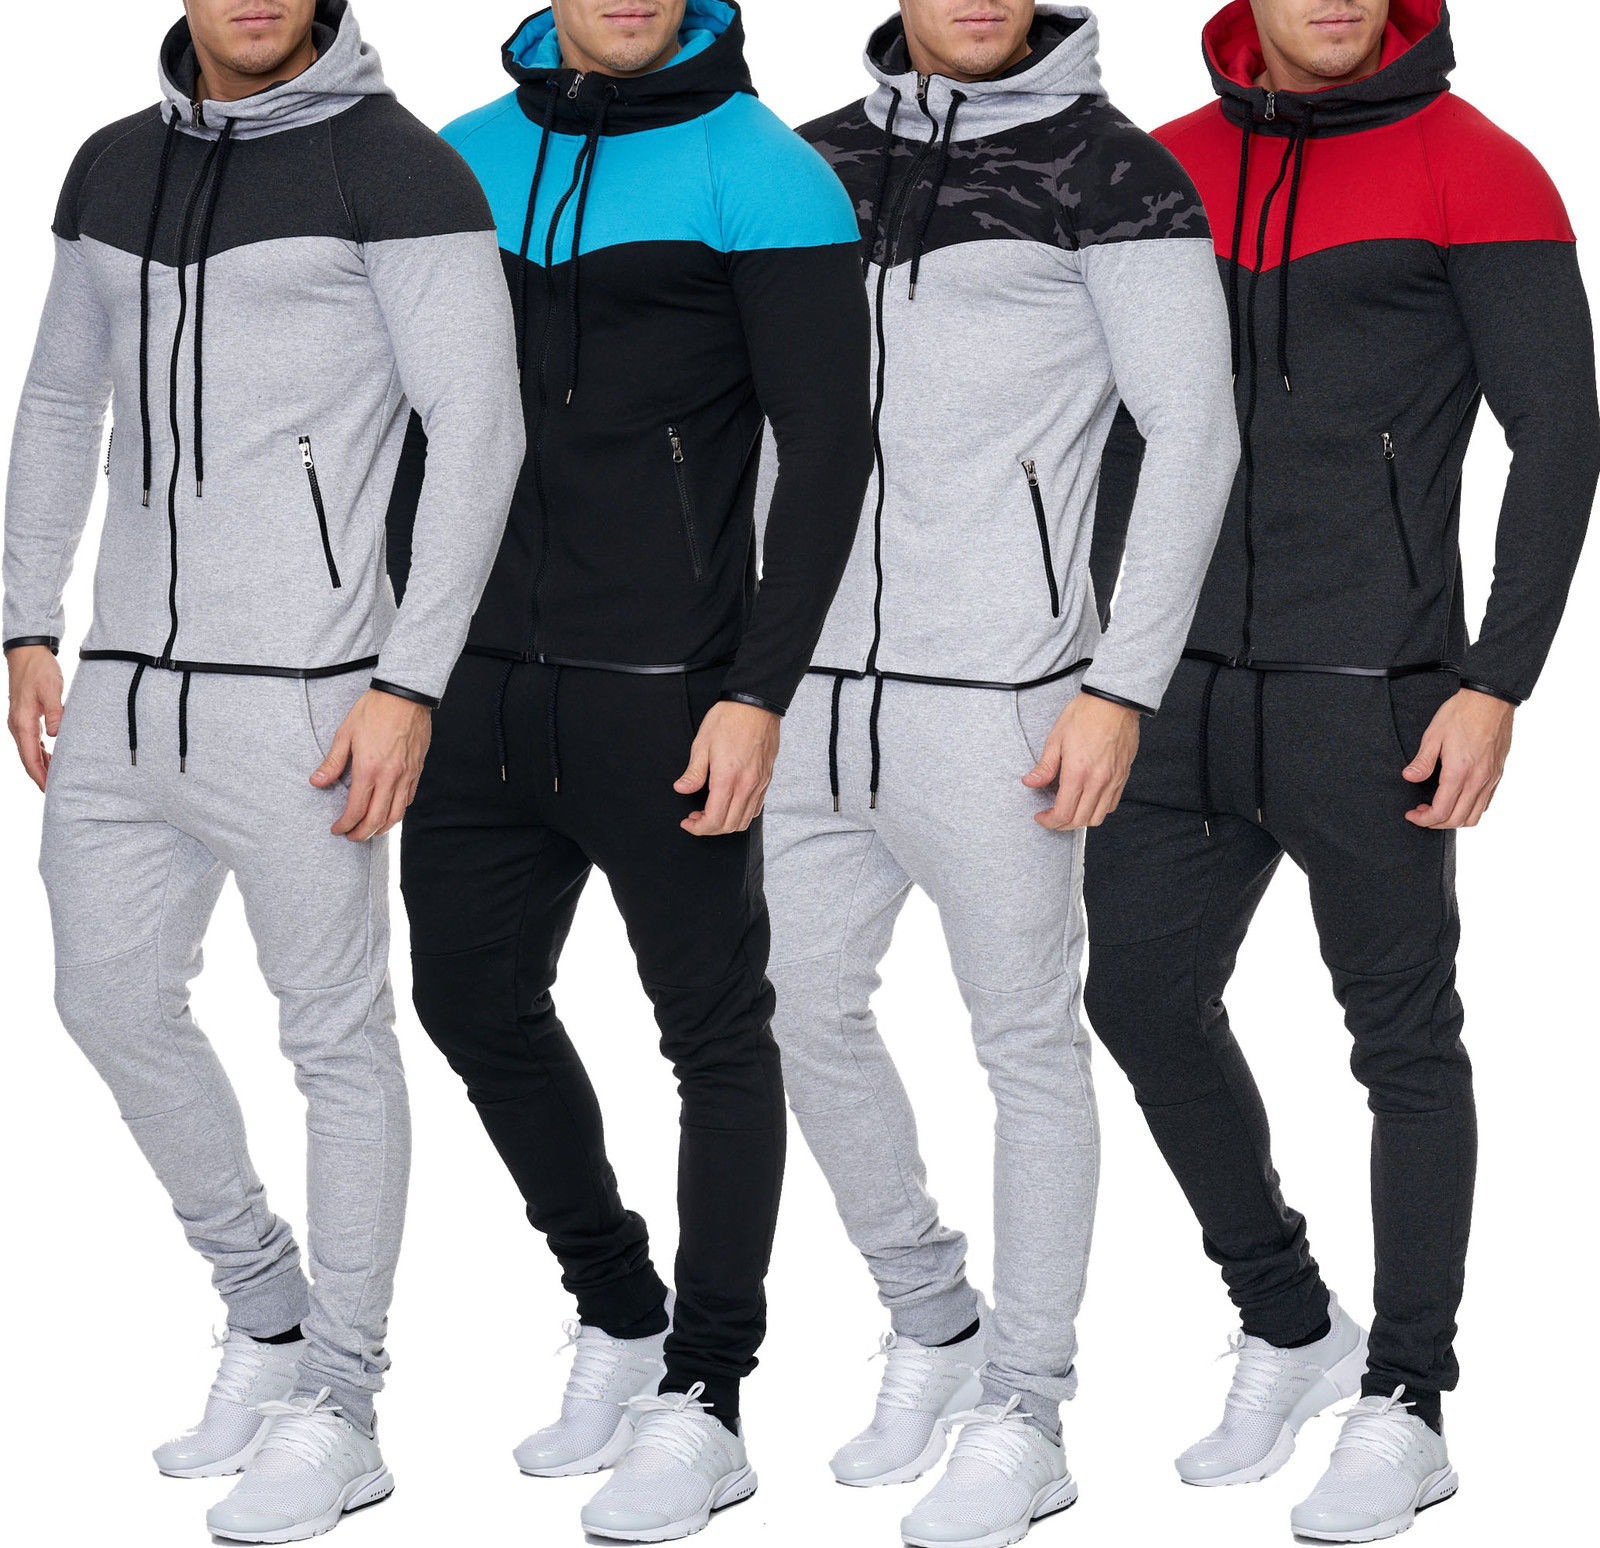 Men Casual Fashion Sports Jacket And Trousers Set